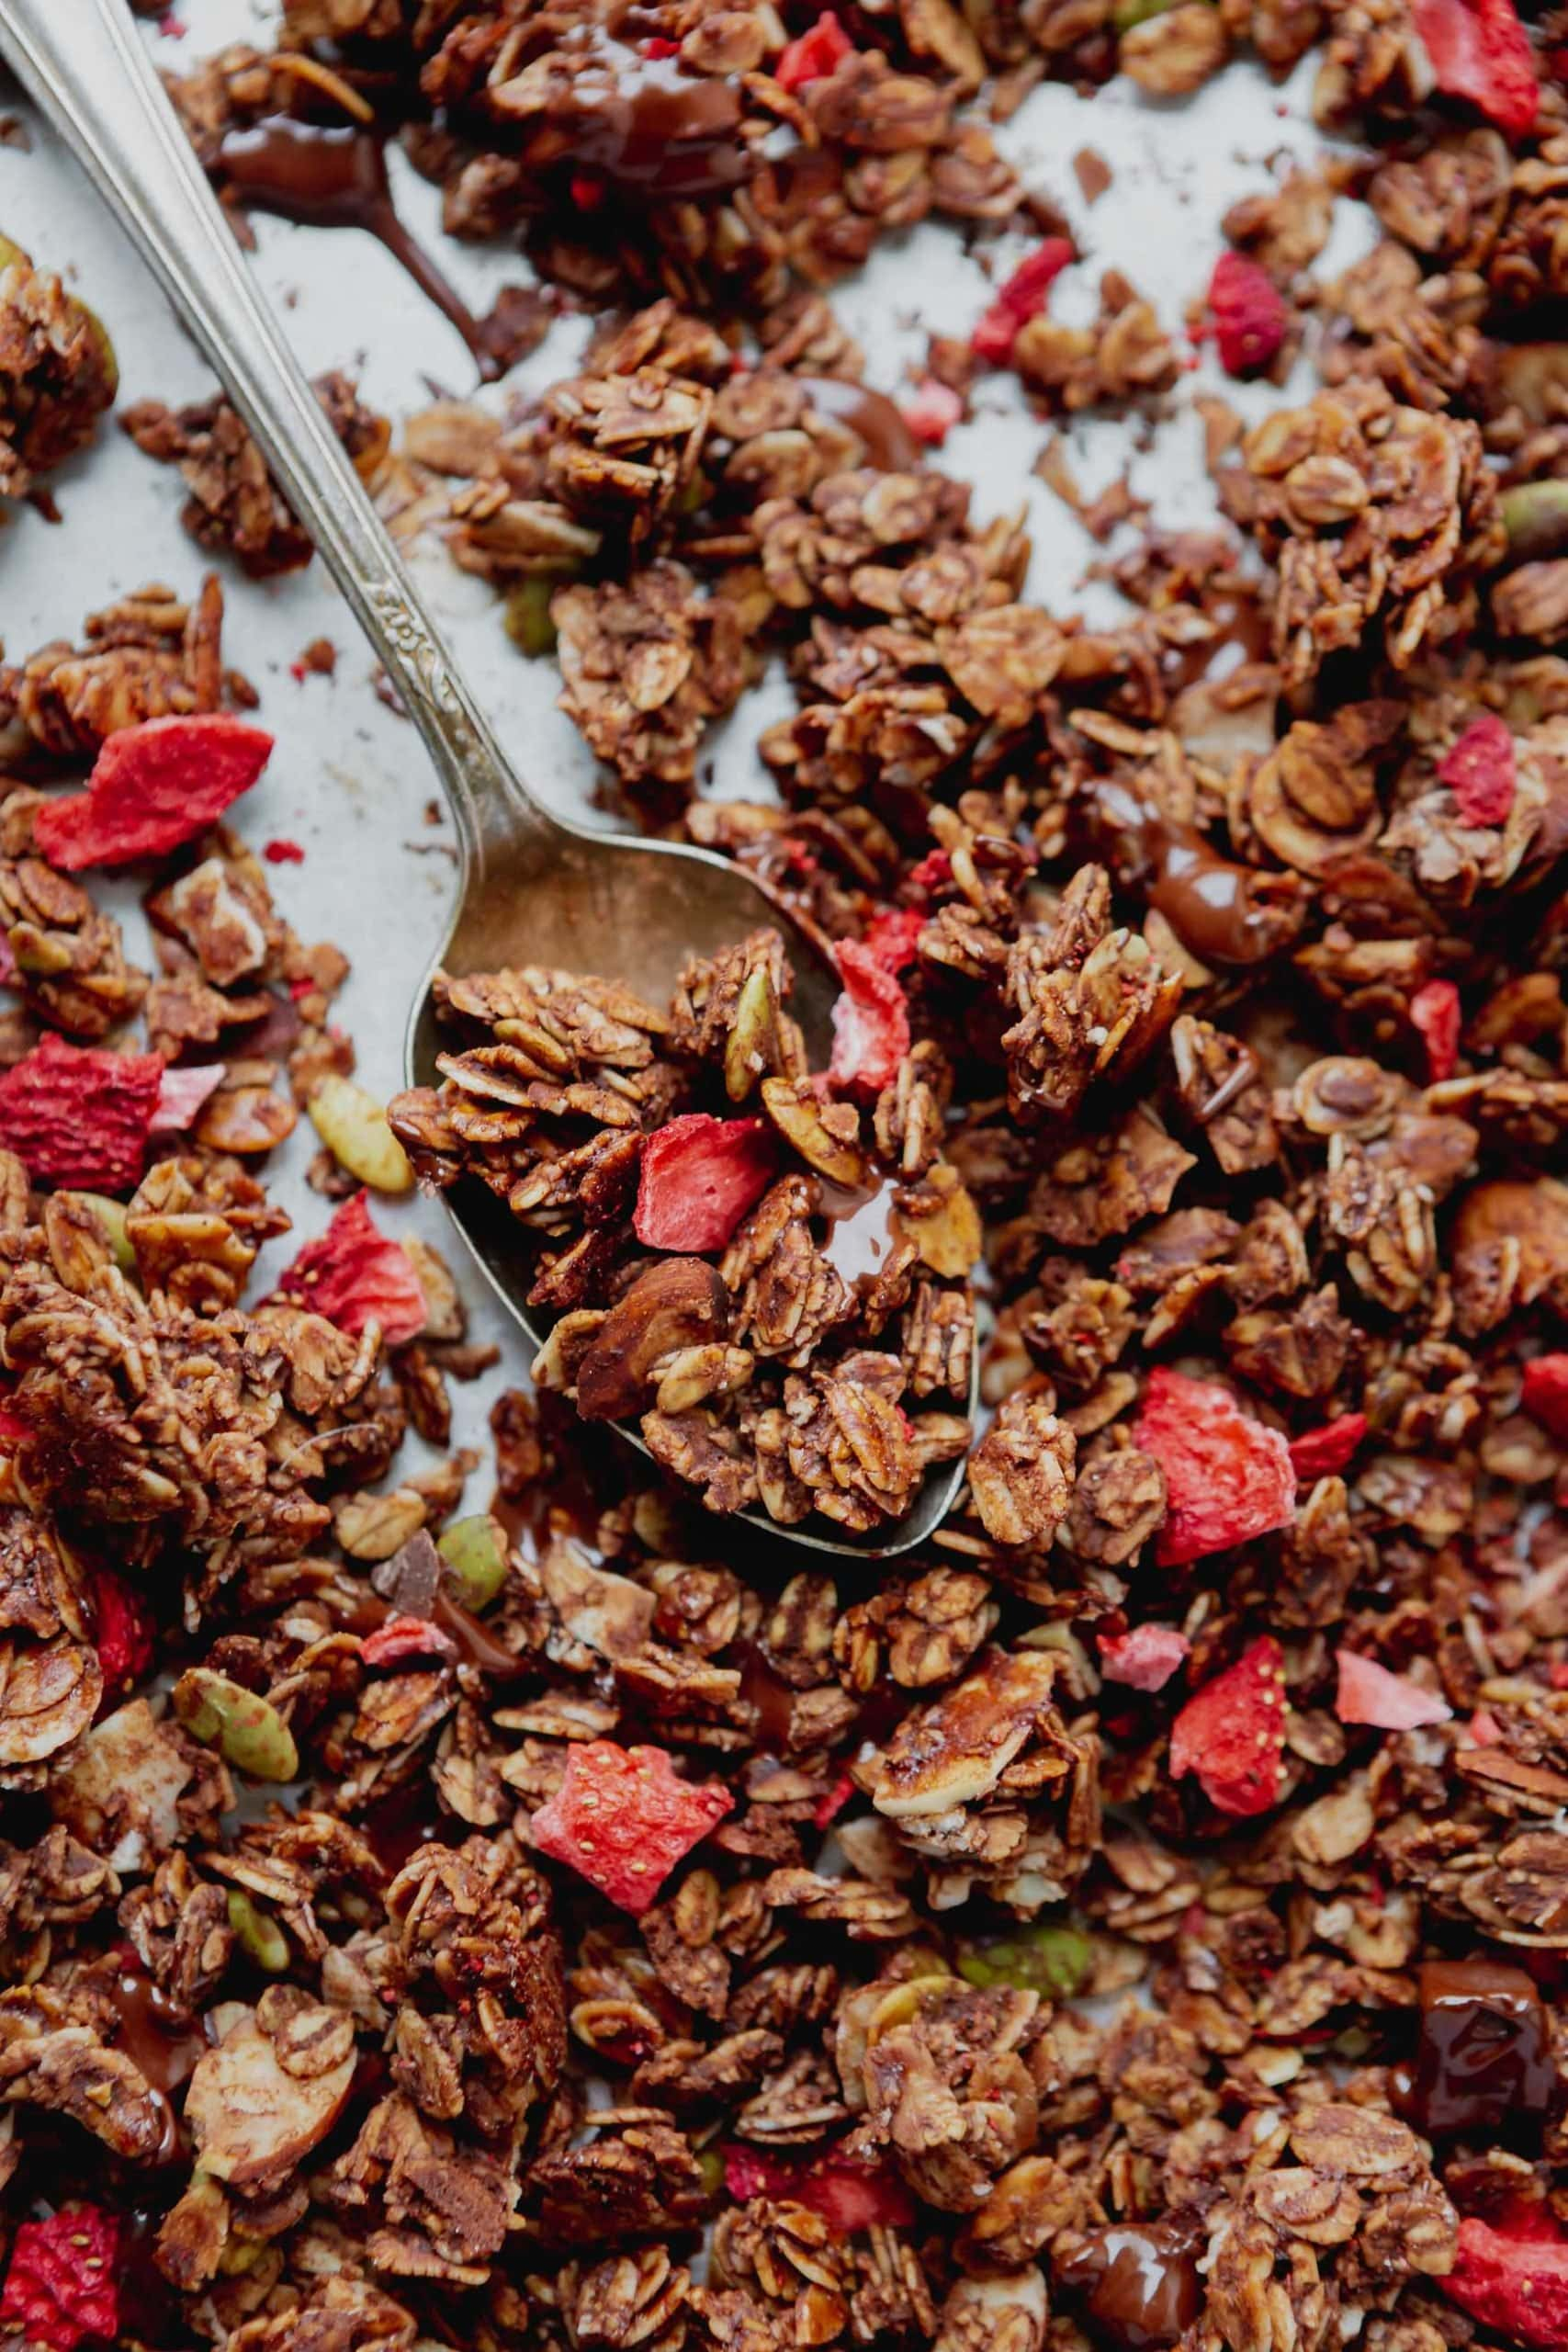 Chocolate granola with dehydrated strawberries on a baking pan with a spoon.